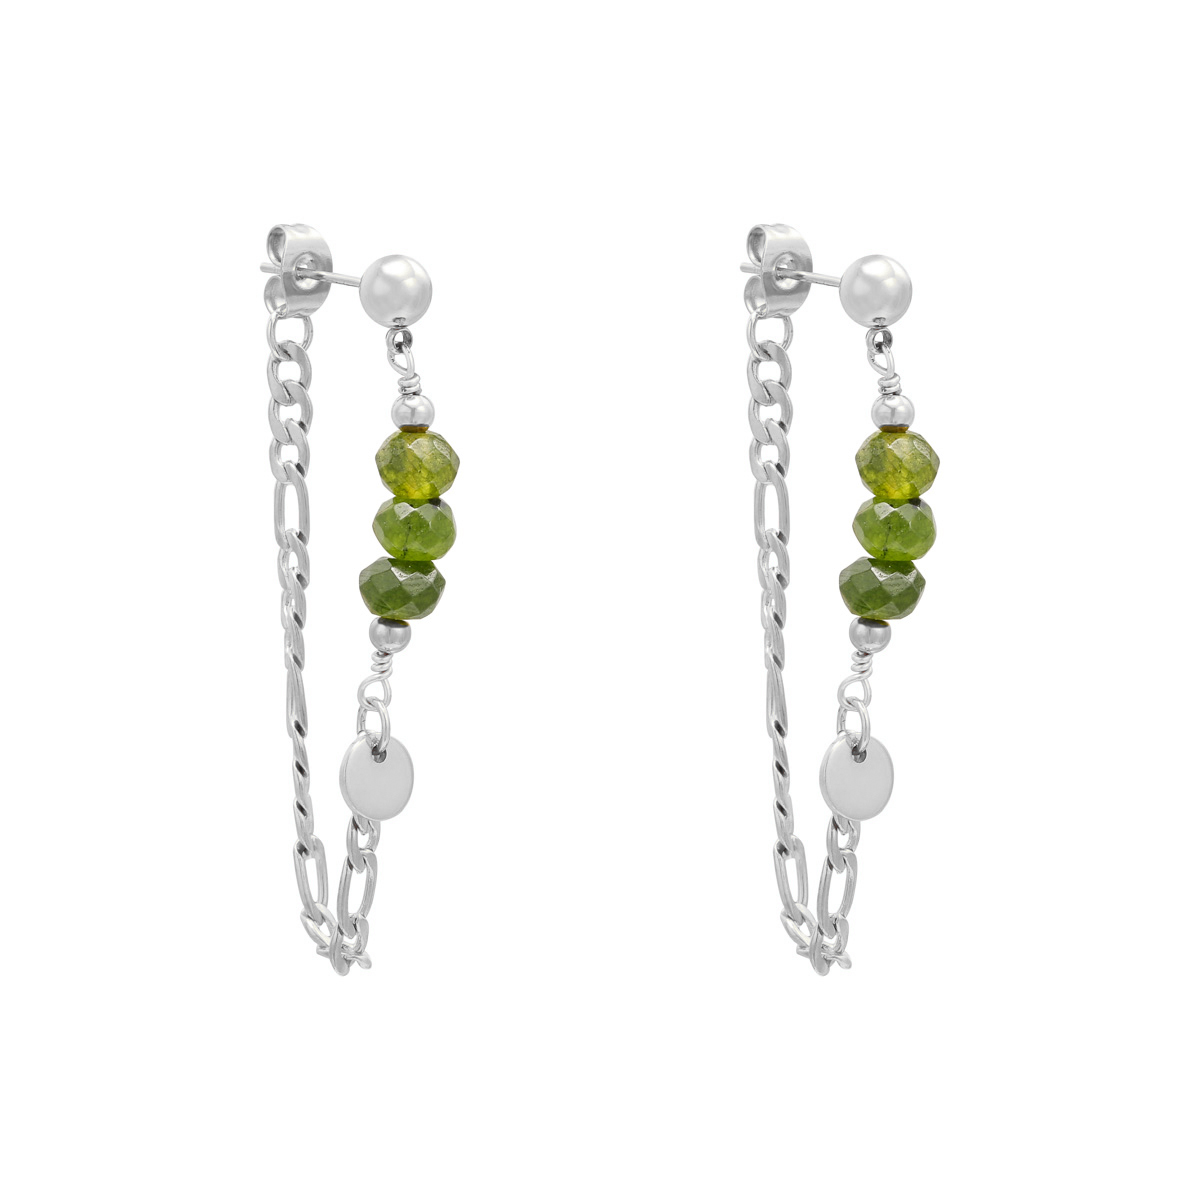 Boucles d'oreilles Chained On Beads